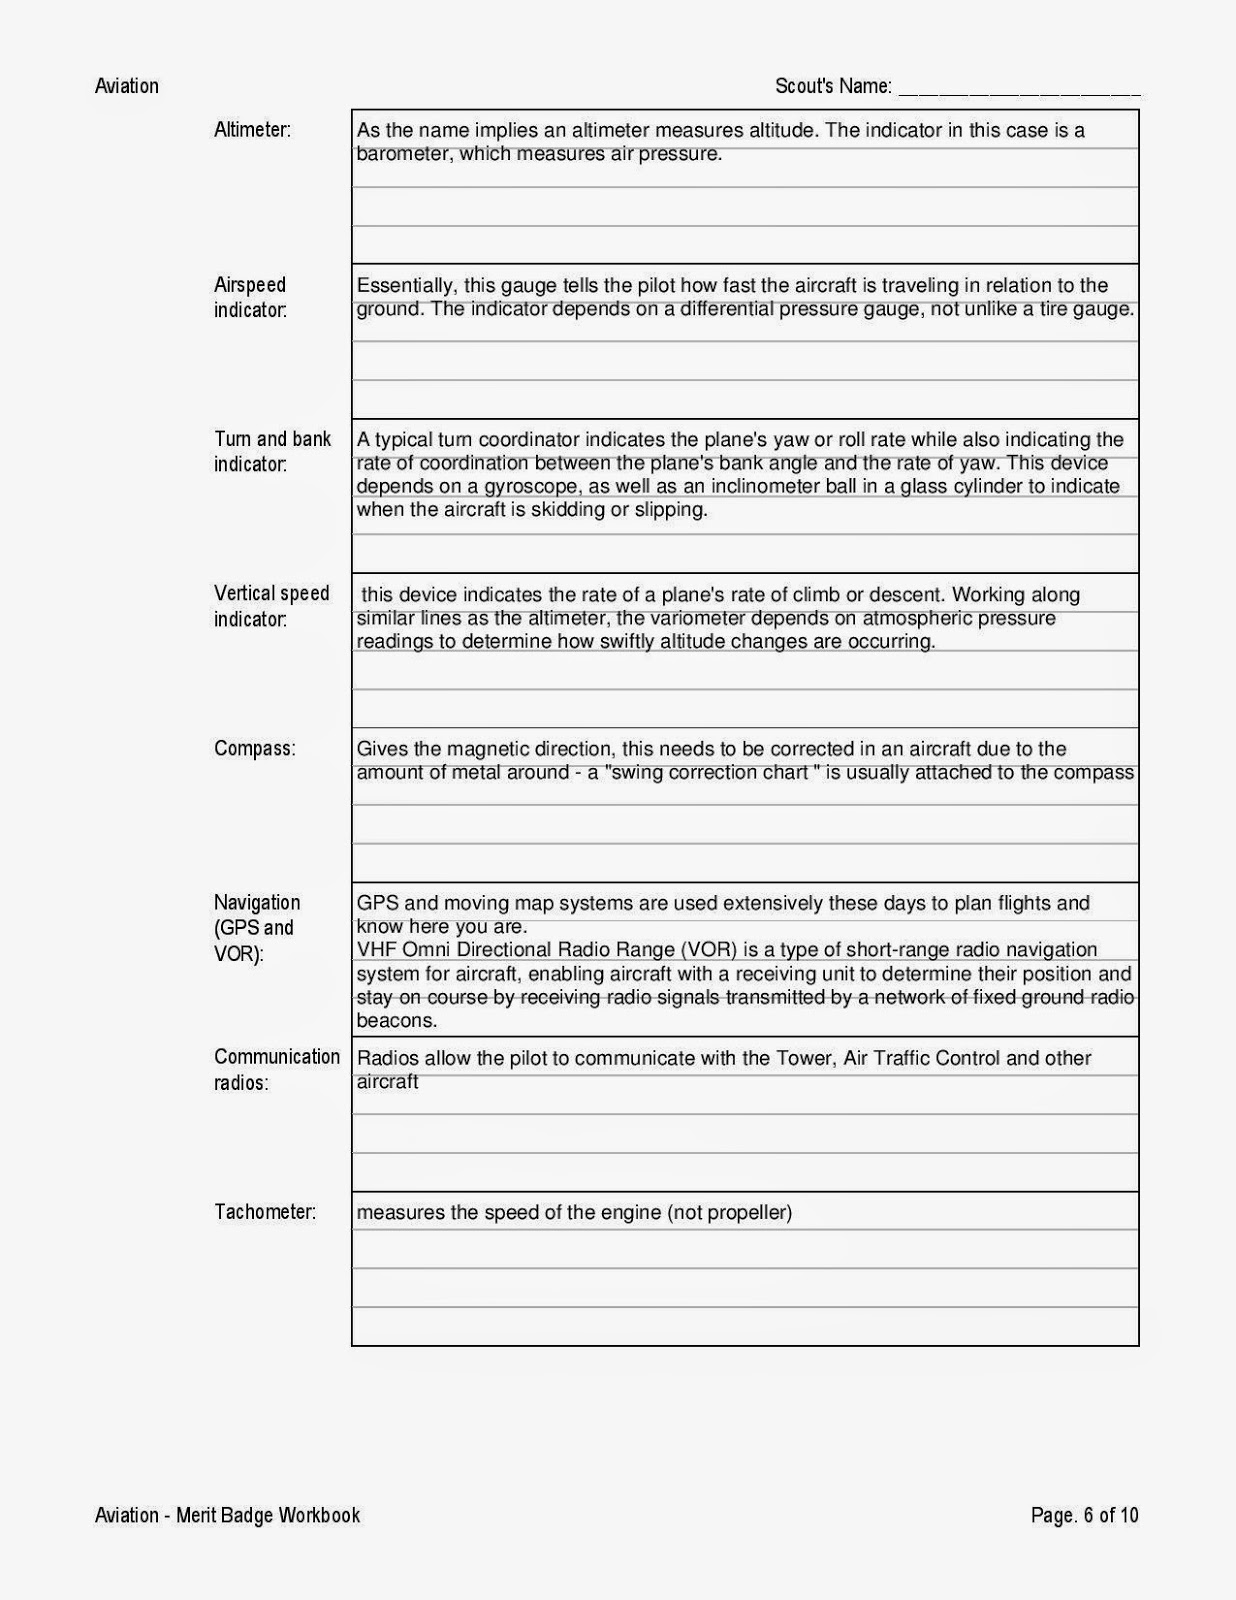 Aviation Merit Badge Worksheet Answers - Vintagegrn